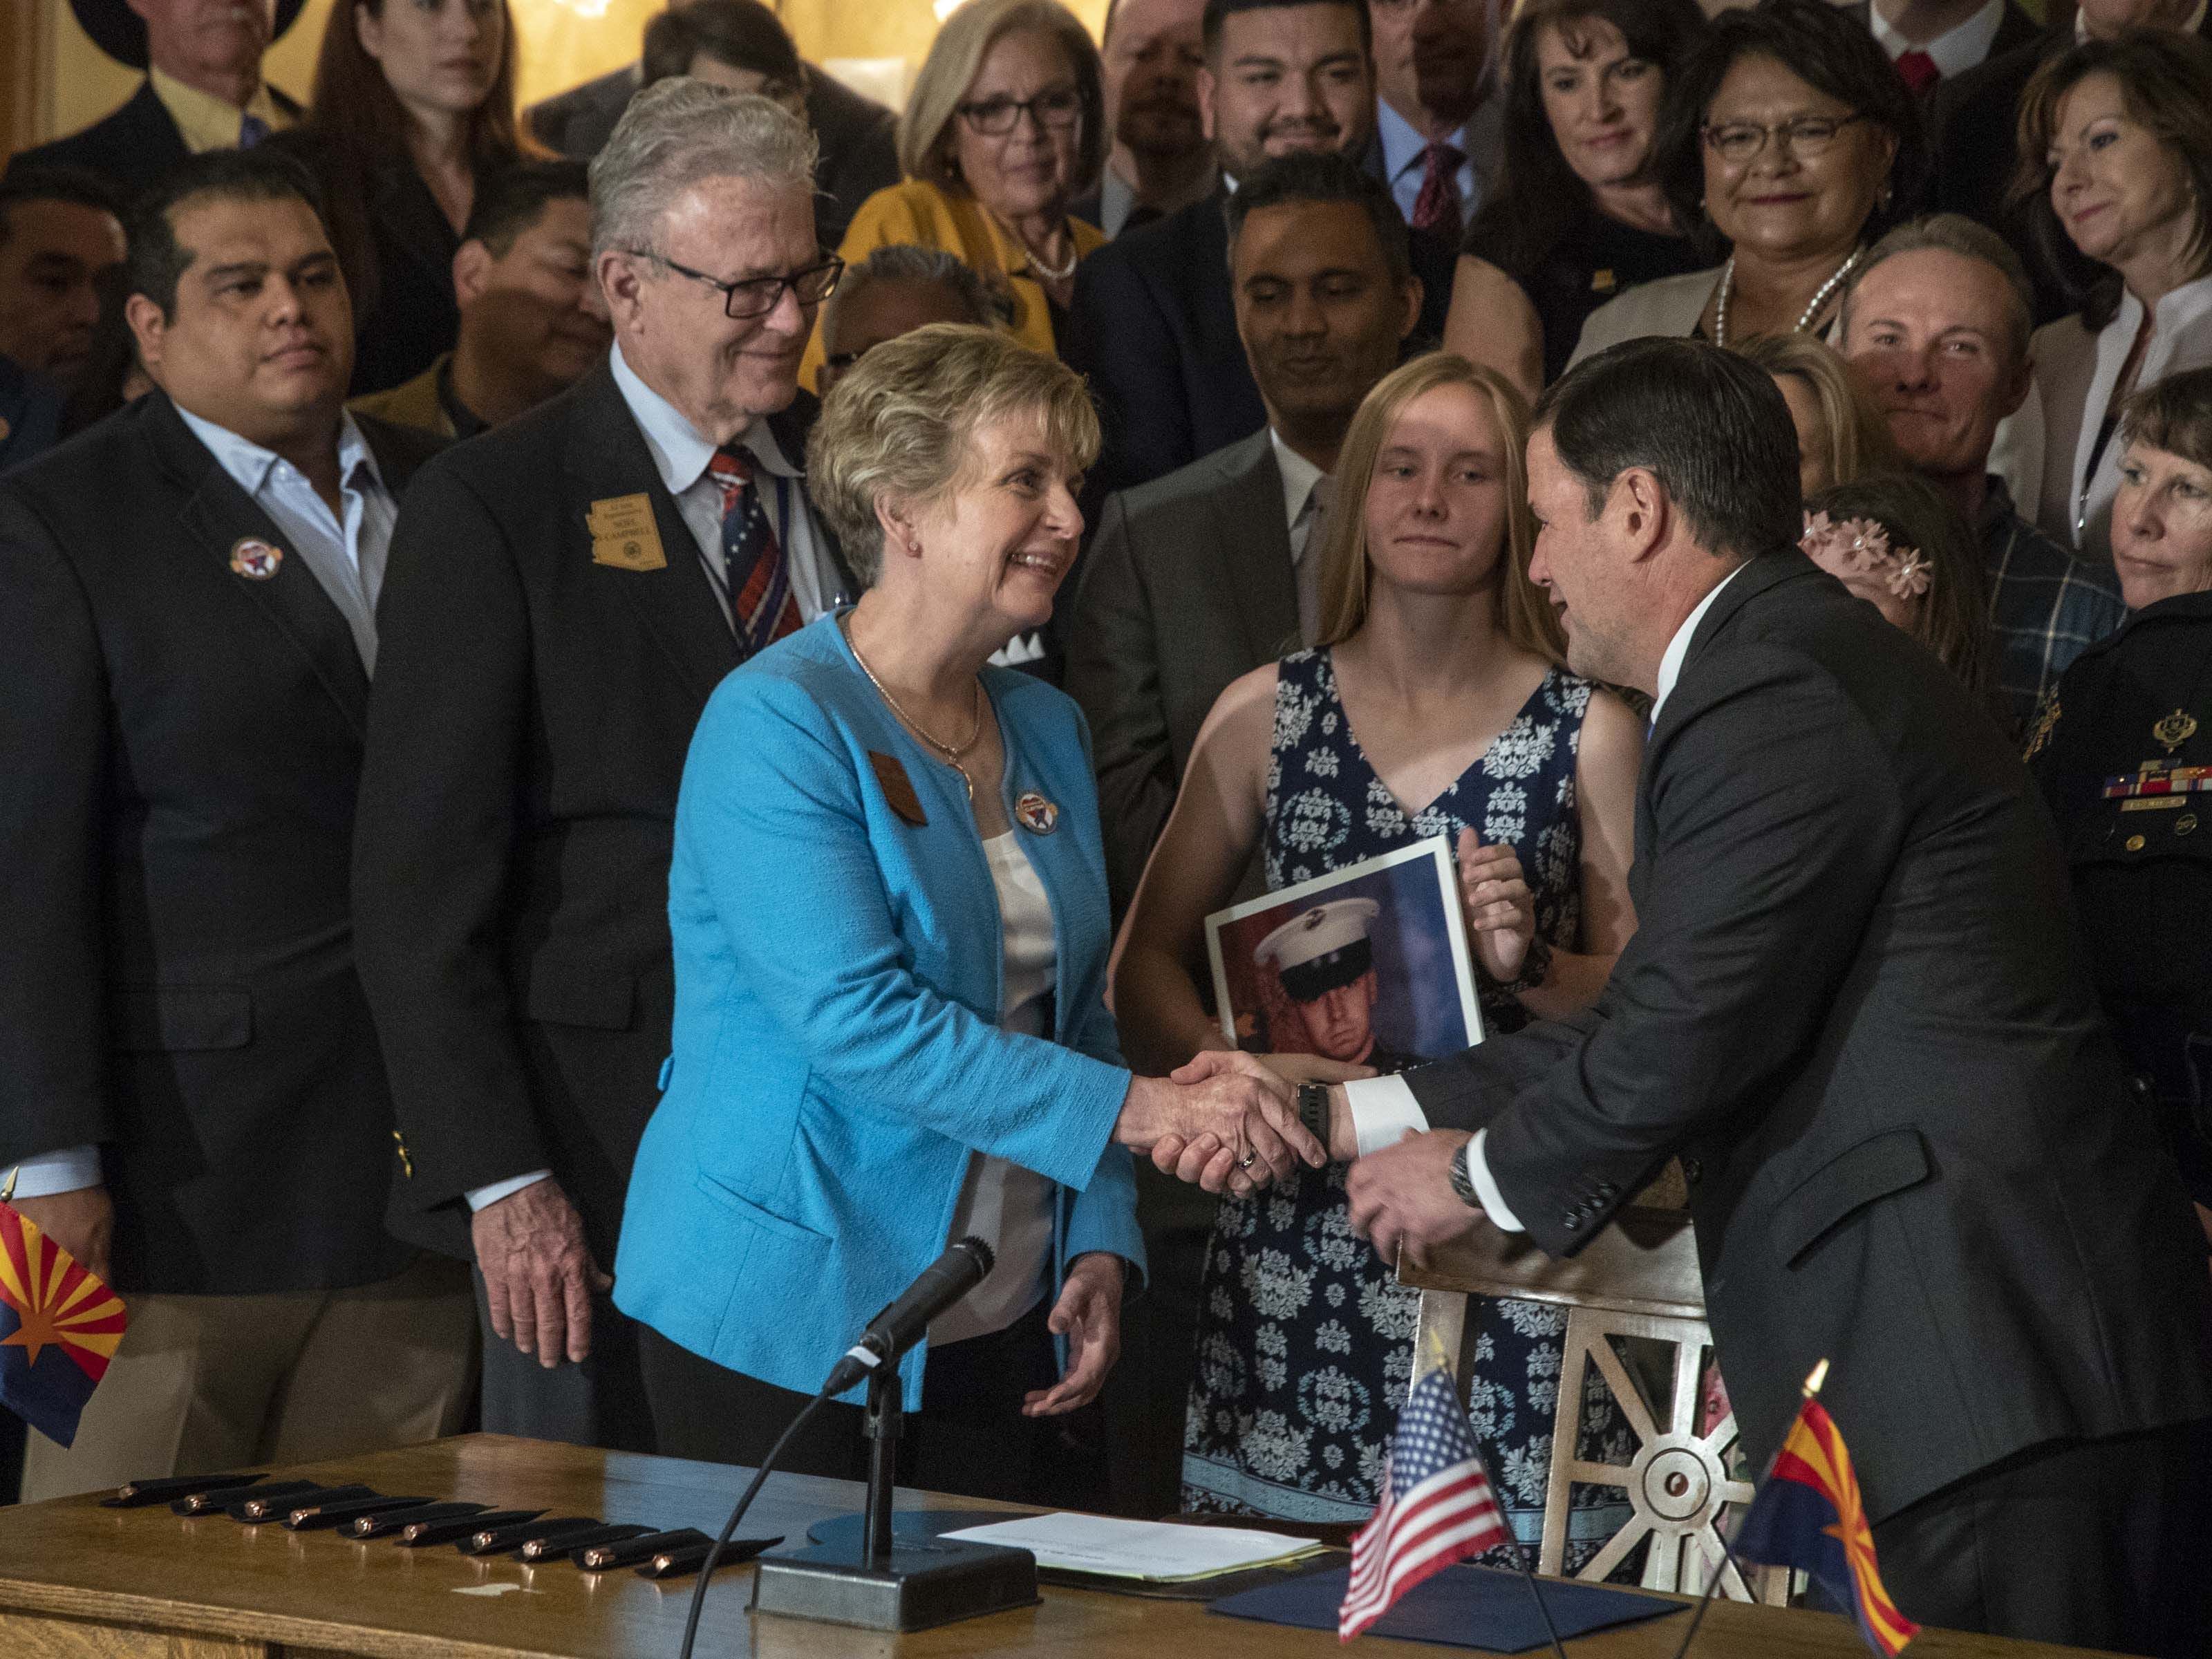 Gov. Doug Ducey shakes Sen. Kate Brophy McGee's hand during the signing of HB 2318 in the Rotunda of the Arizona Capitol Museum on April 22, 2019. The bill prohibits texting while driving in Arizona.